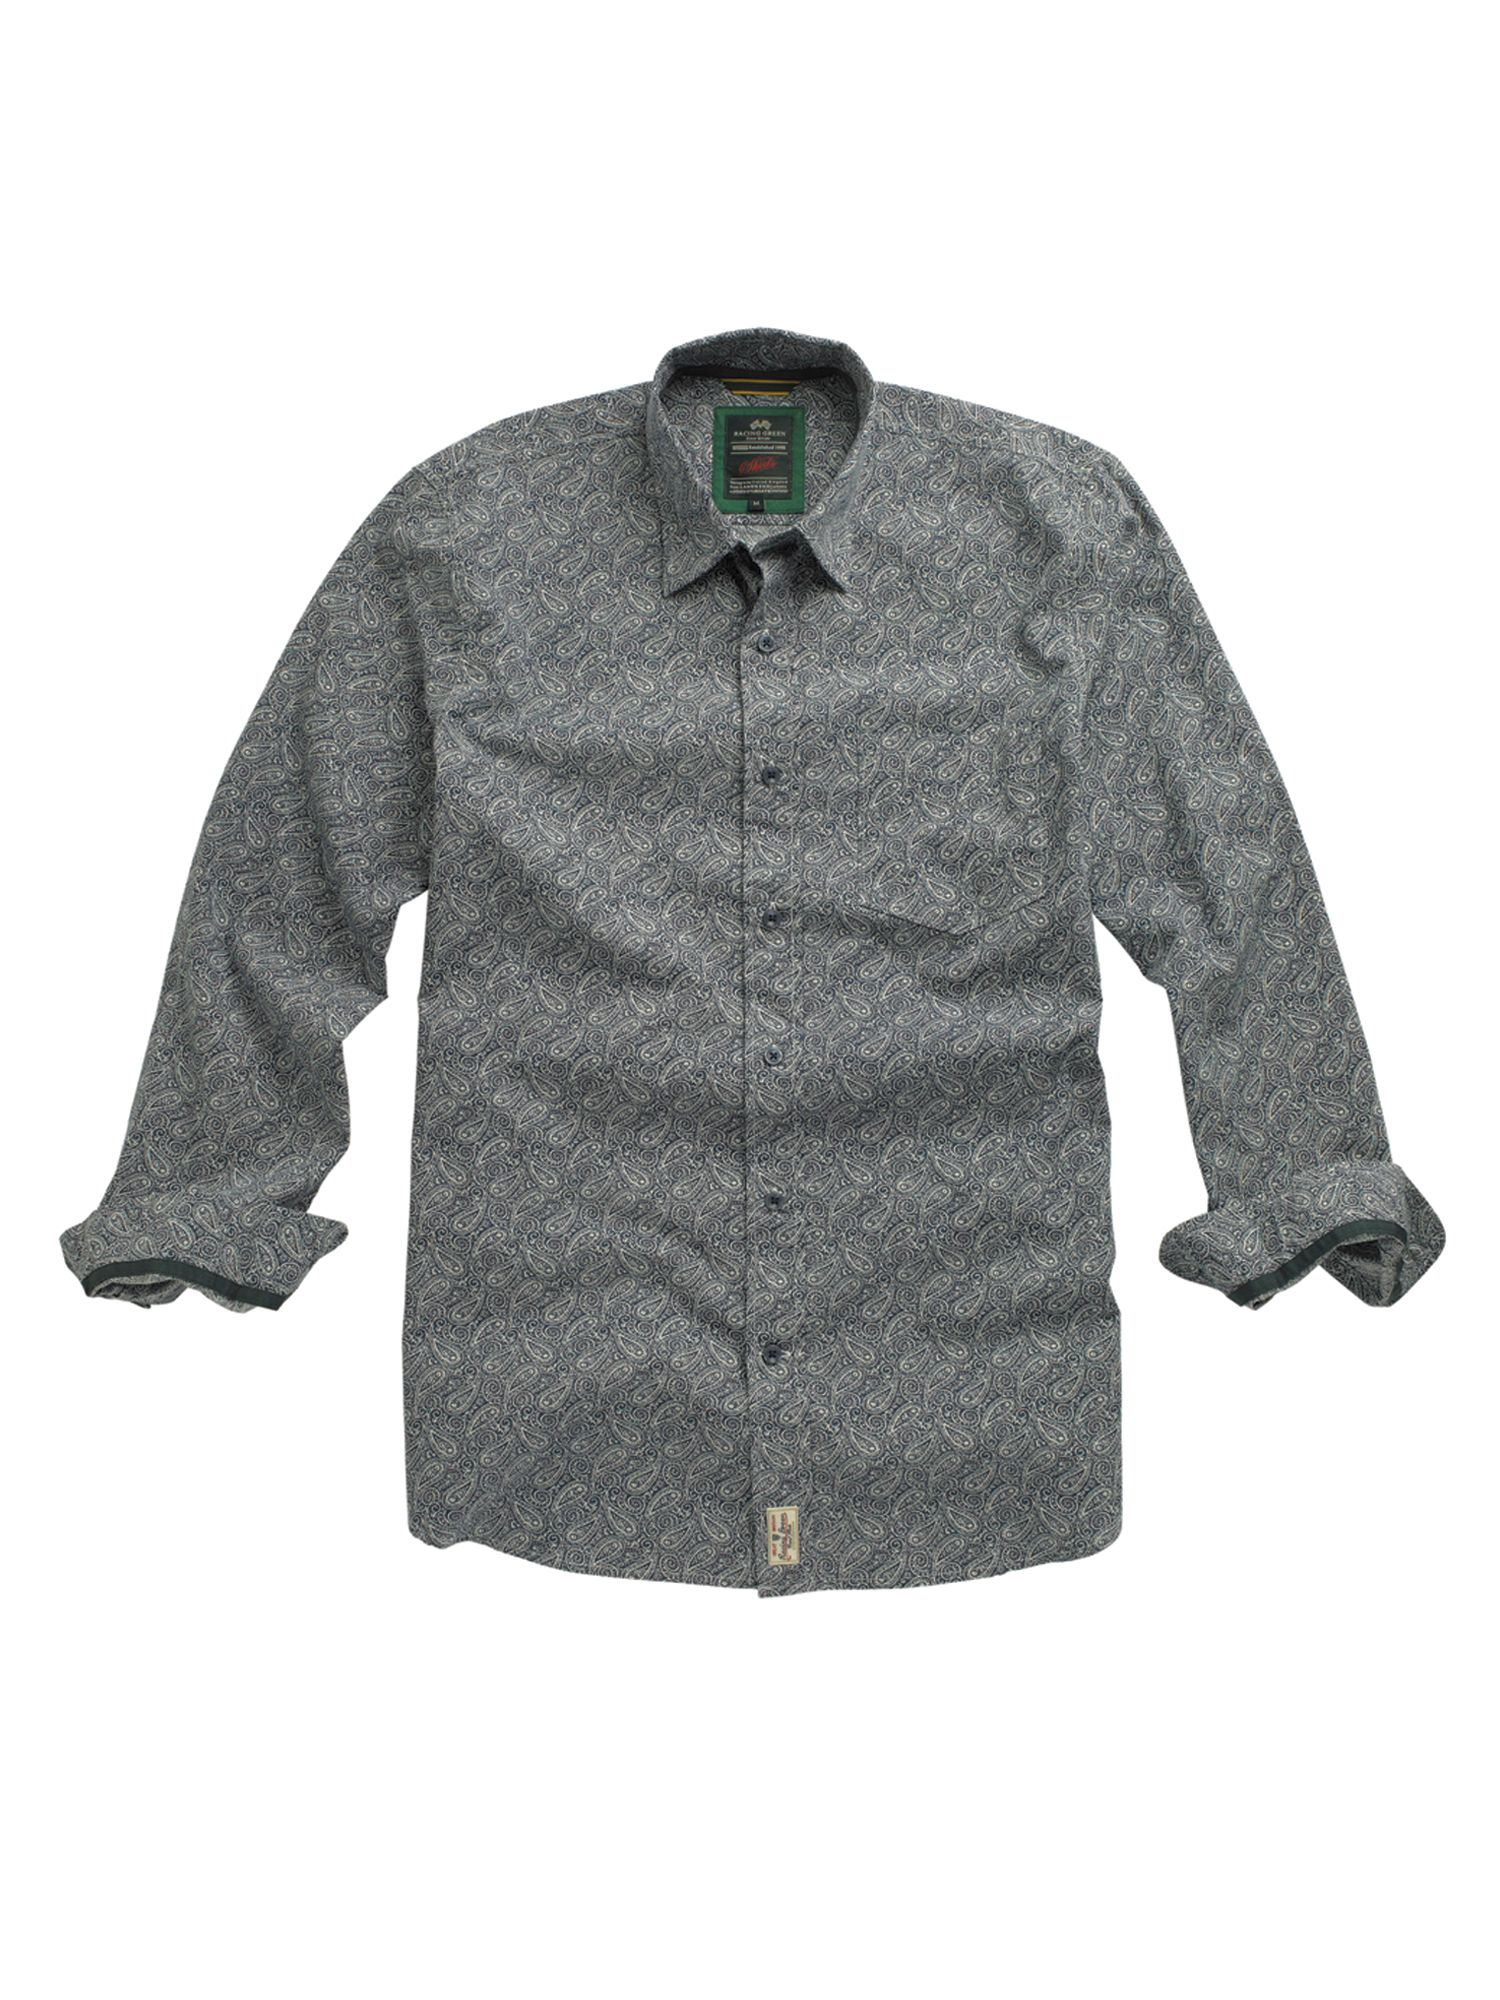 Racing Green Laundered Paisley Print-shirt - Navy S,S,M,M product image